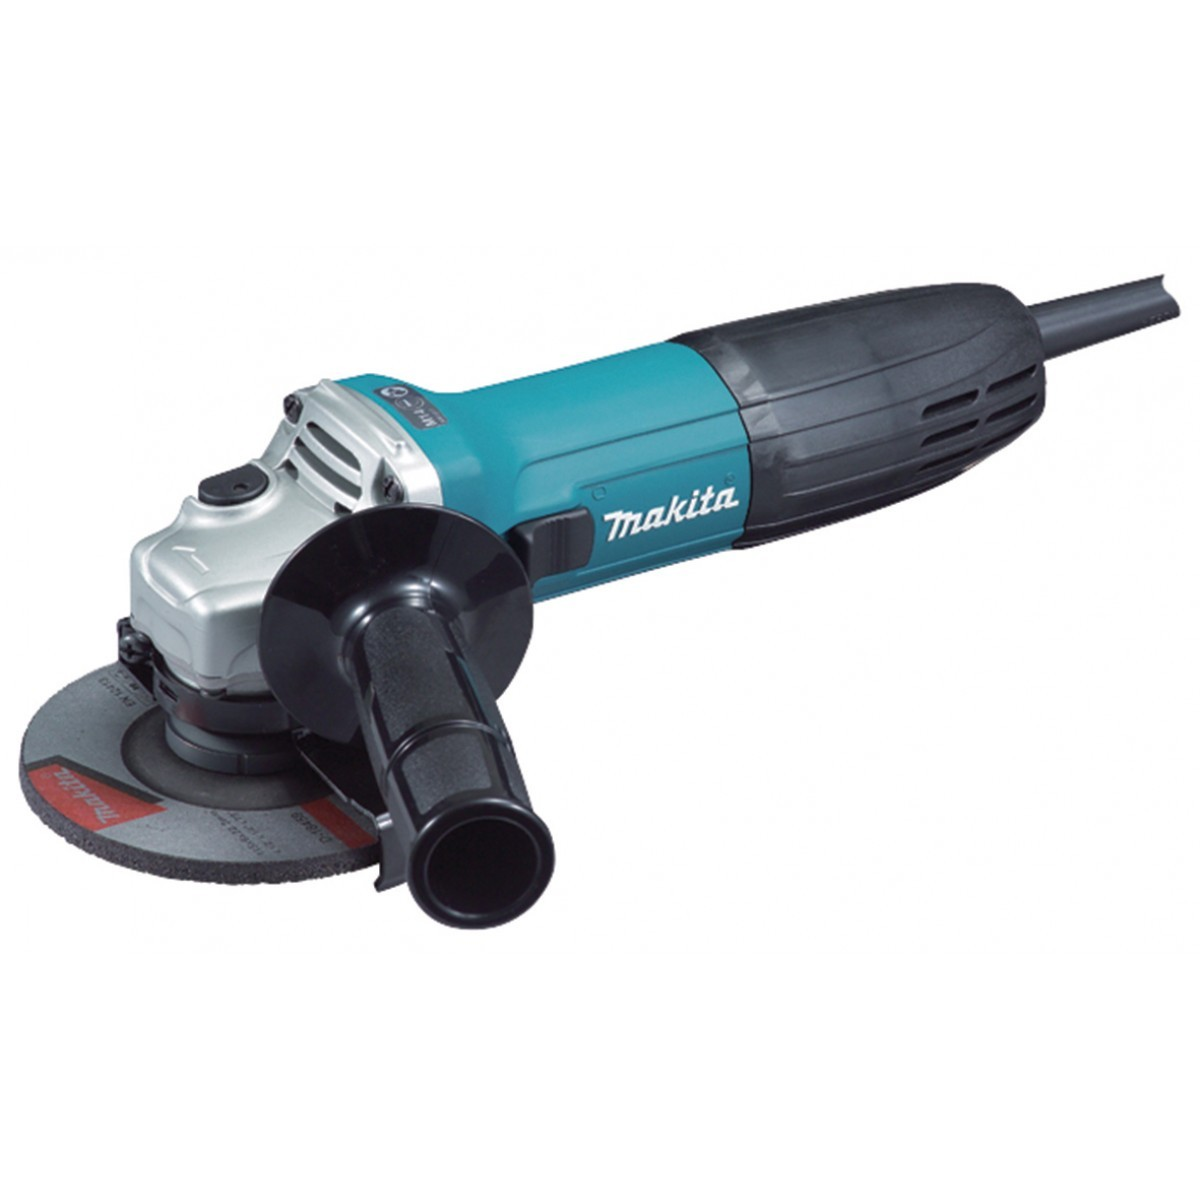 Makita GA4530R 115mm Slim Angle Grinder 720W with Anti-Restart